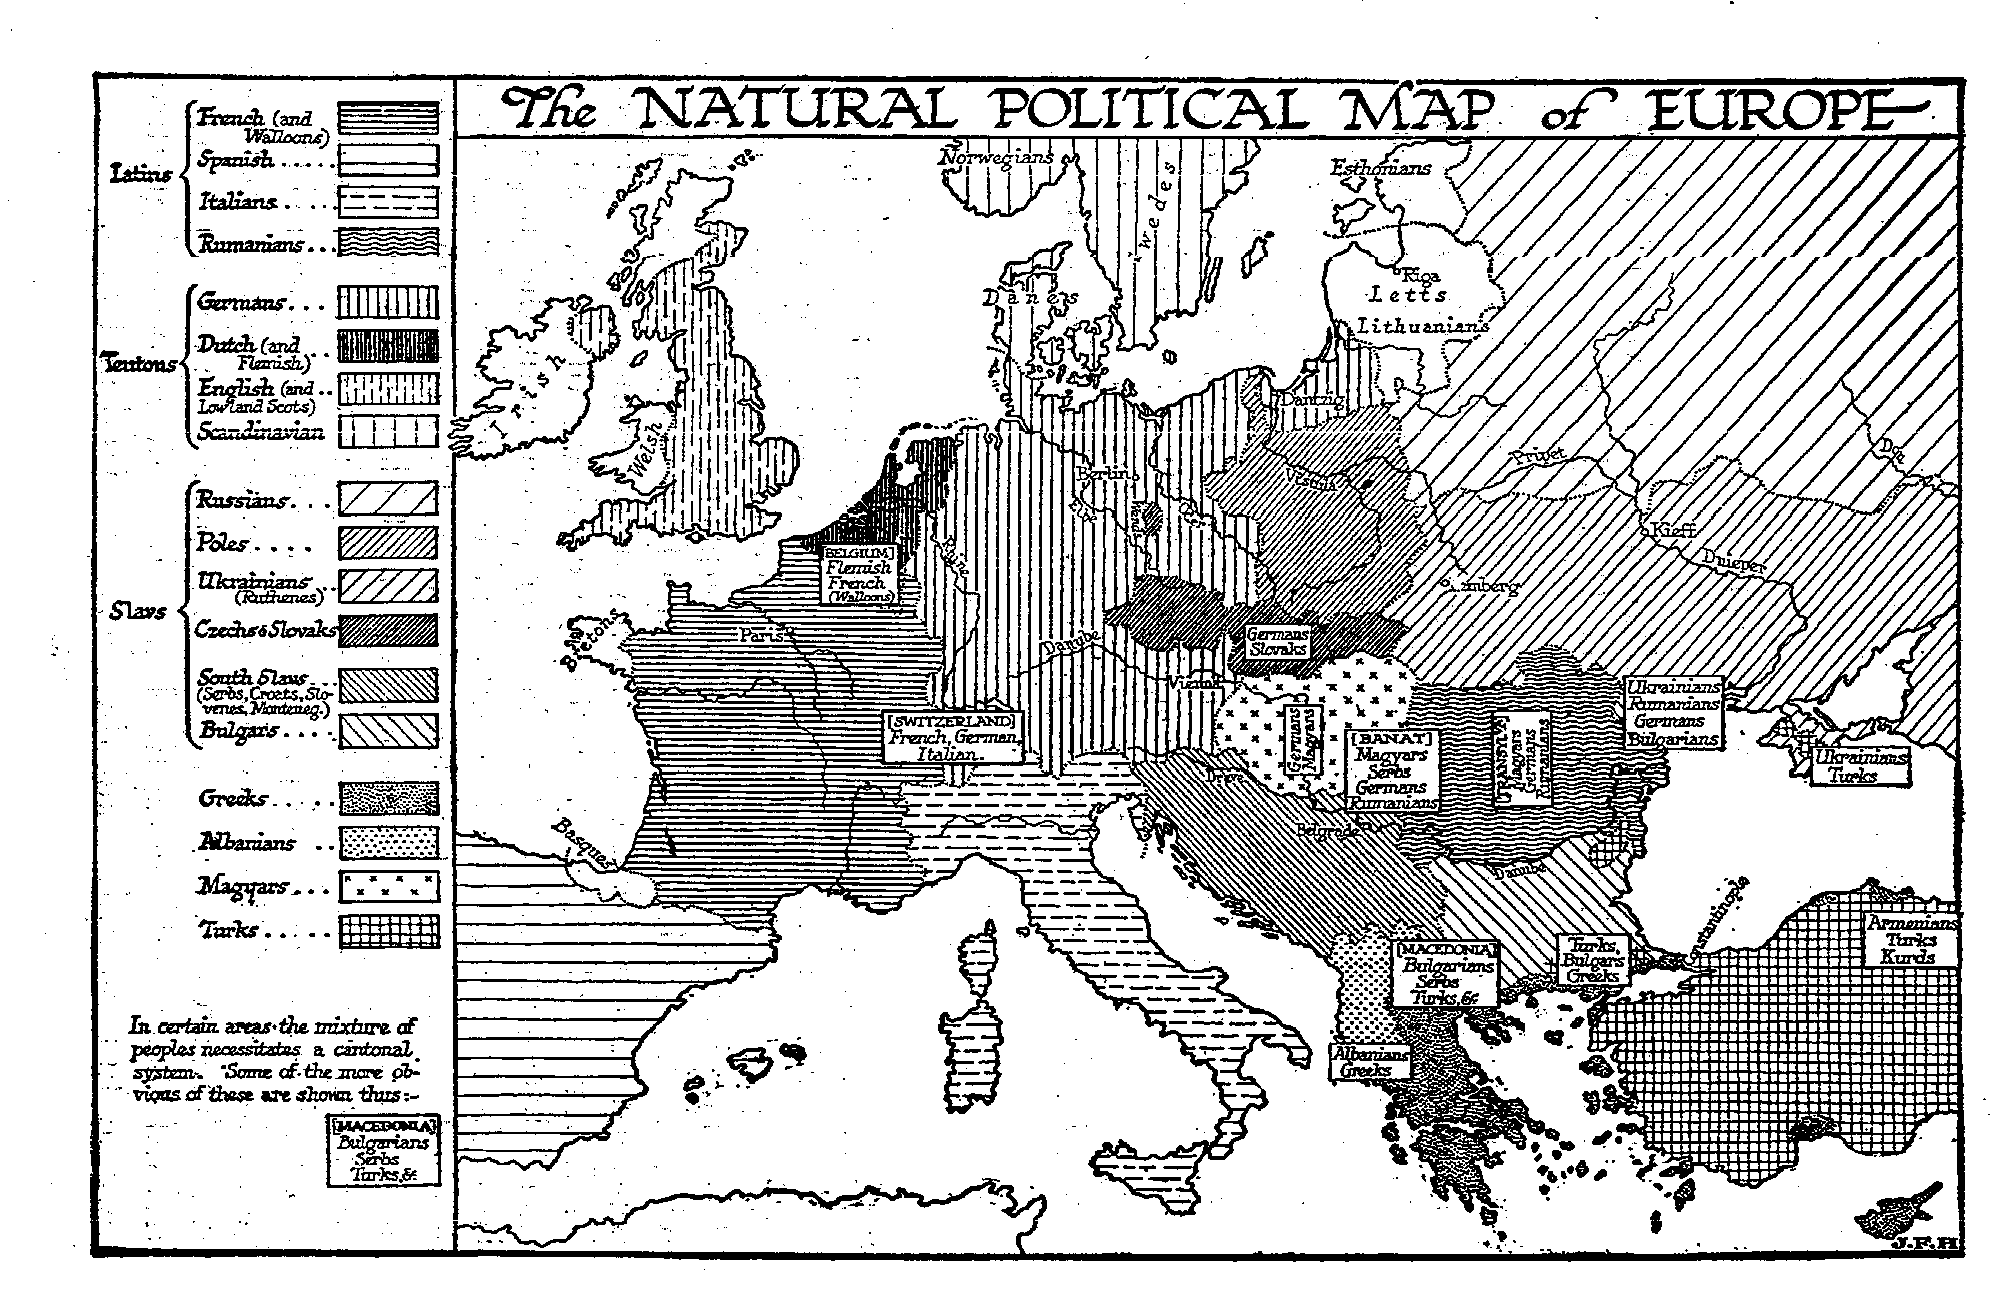 37.6 The Map of Europe in 1815 — The Outline of History by H. G. Wells